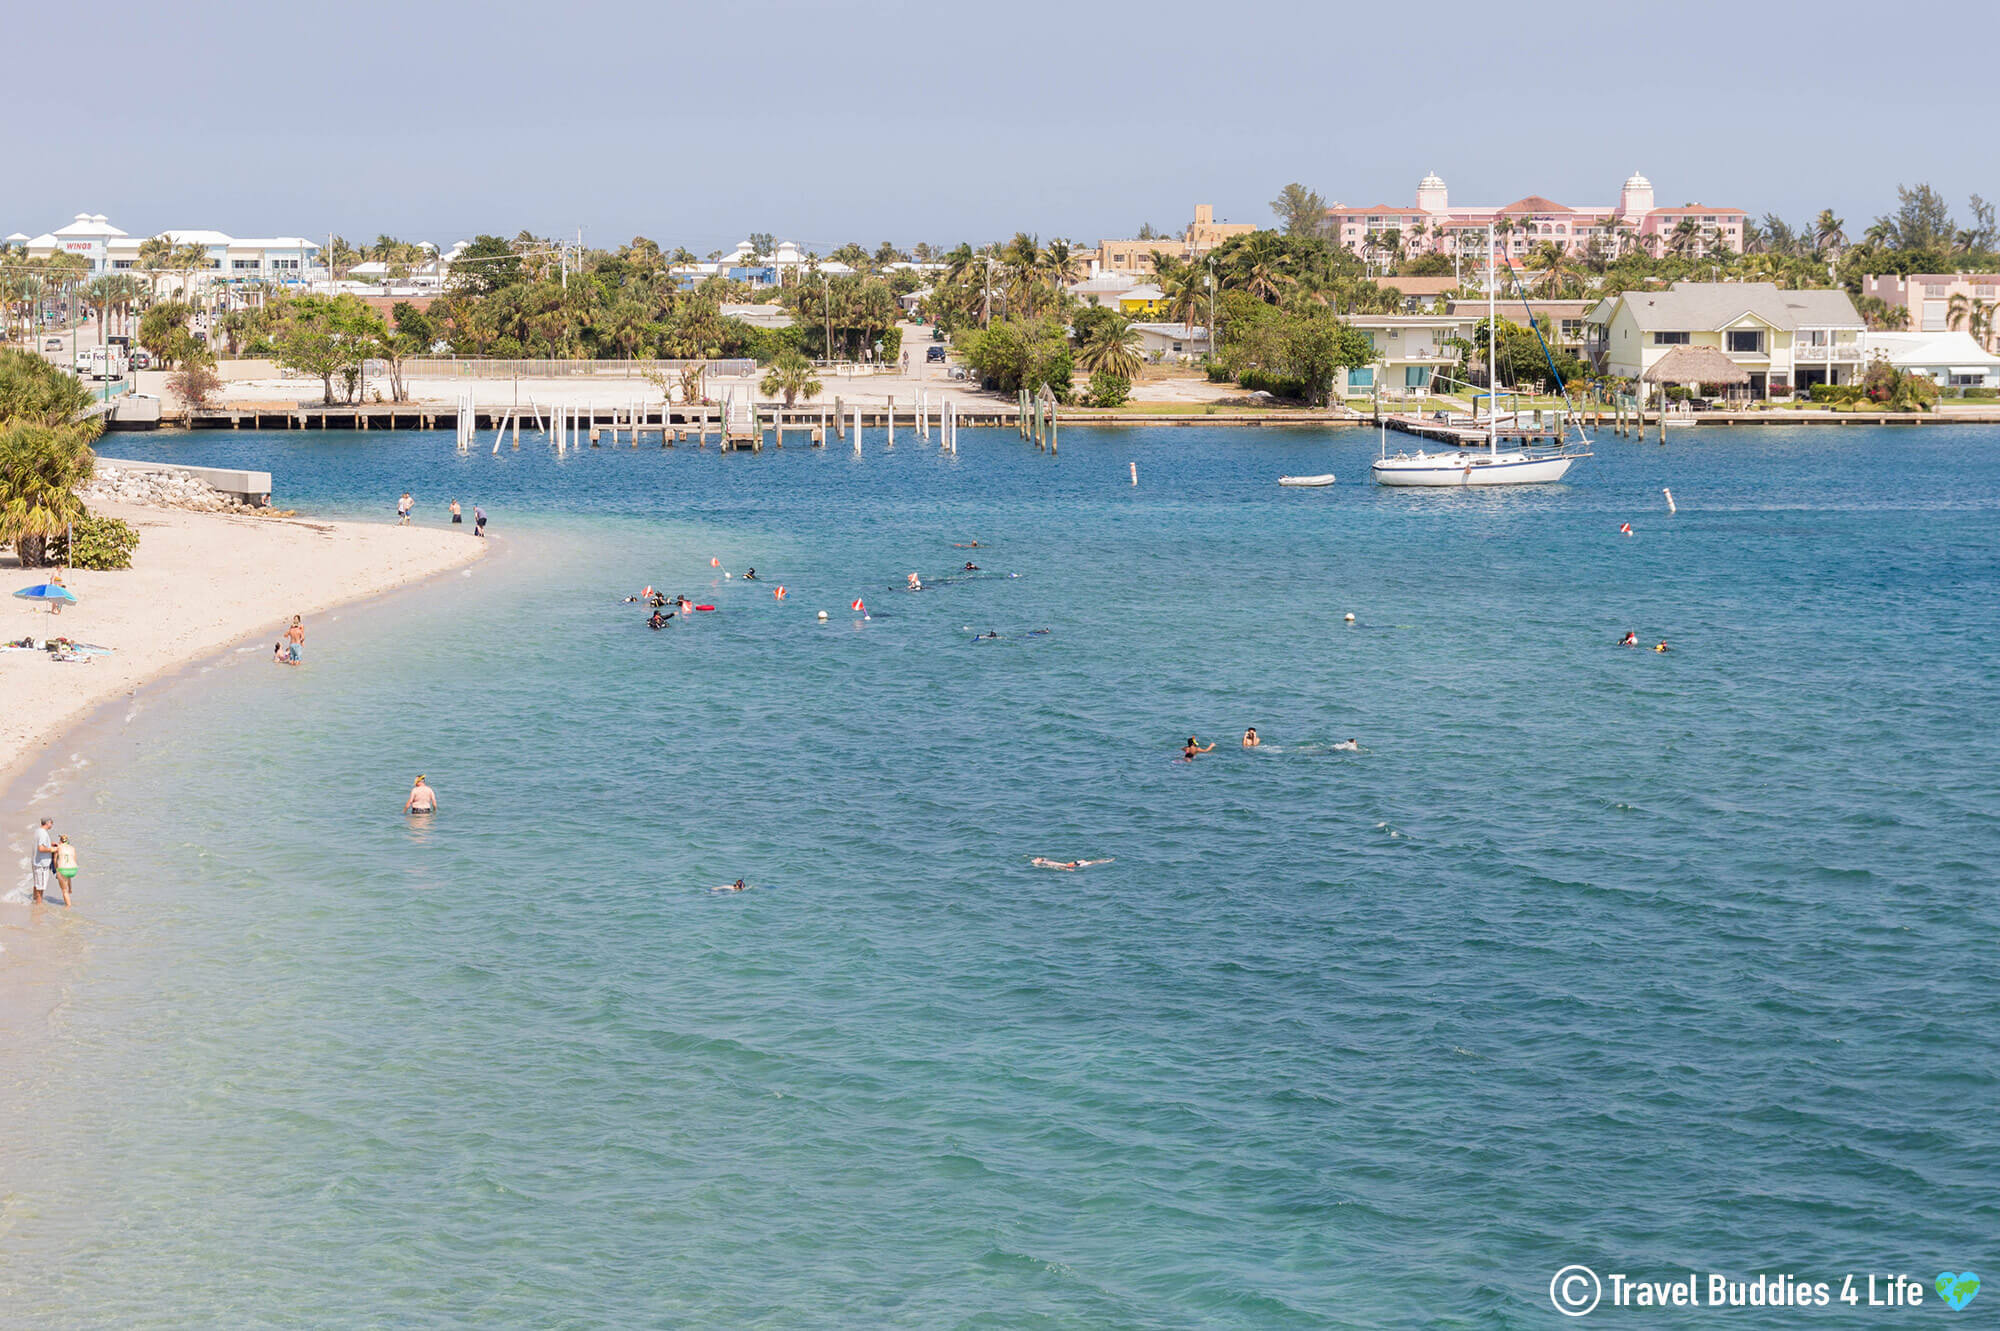 View From Blue Heron Bridge Of The Dive Site And Beach In West Palm